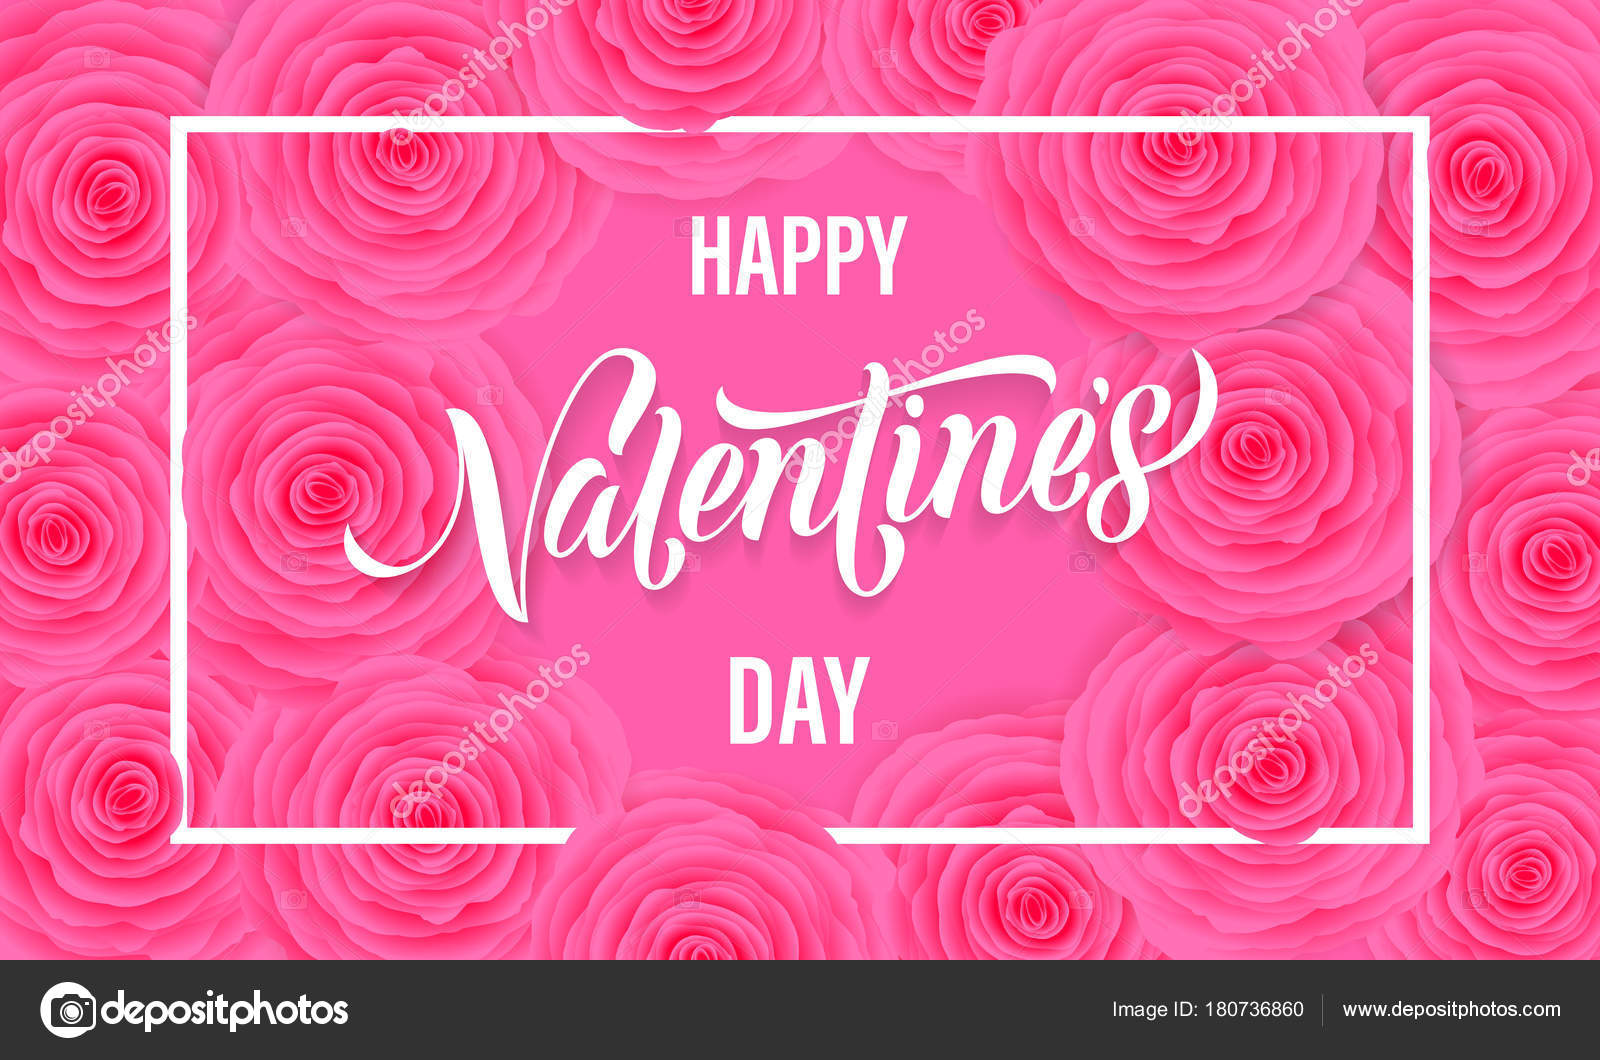 Happy Valentine Day Floral Greeting Card Of Pink Roses Pattern